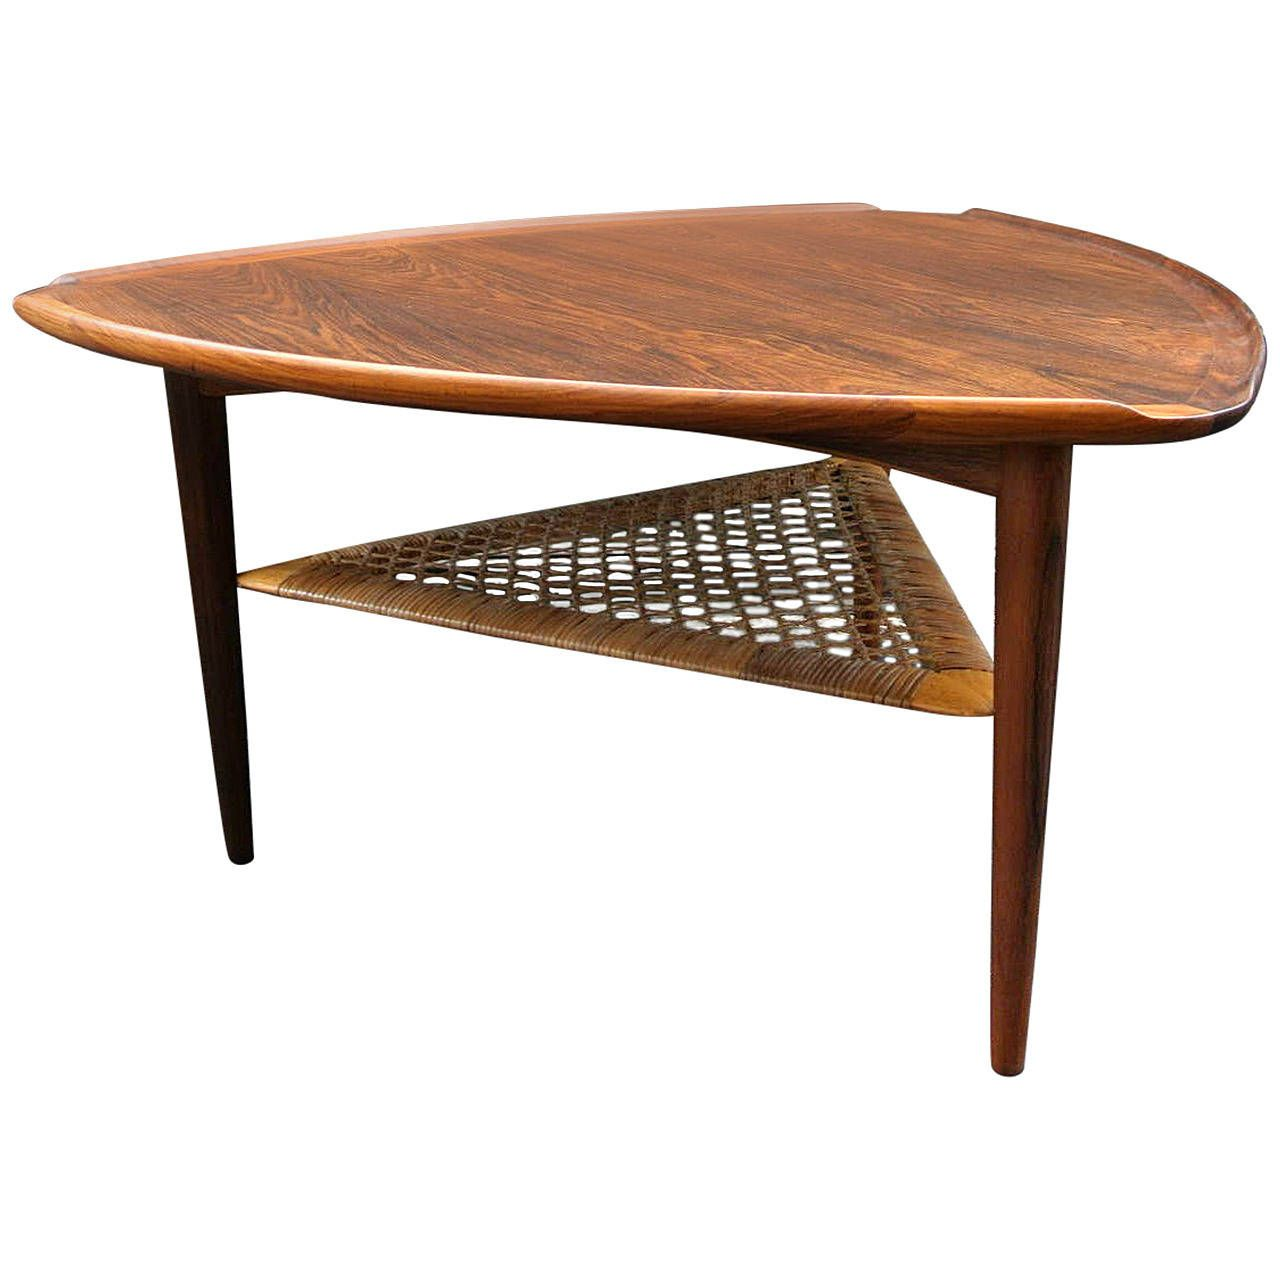 Poul Jensen Triangle Side Table Side Table Table Furniture Triangle End Table [ 1280 x 1280 Pixel ]